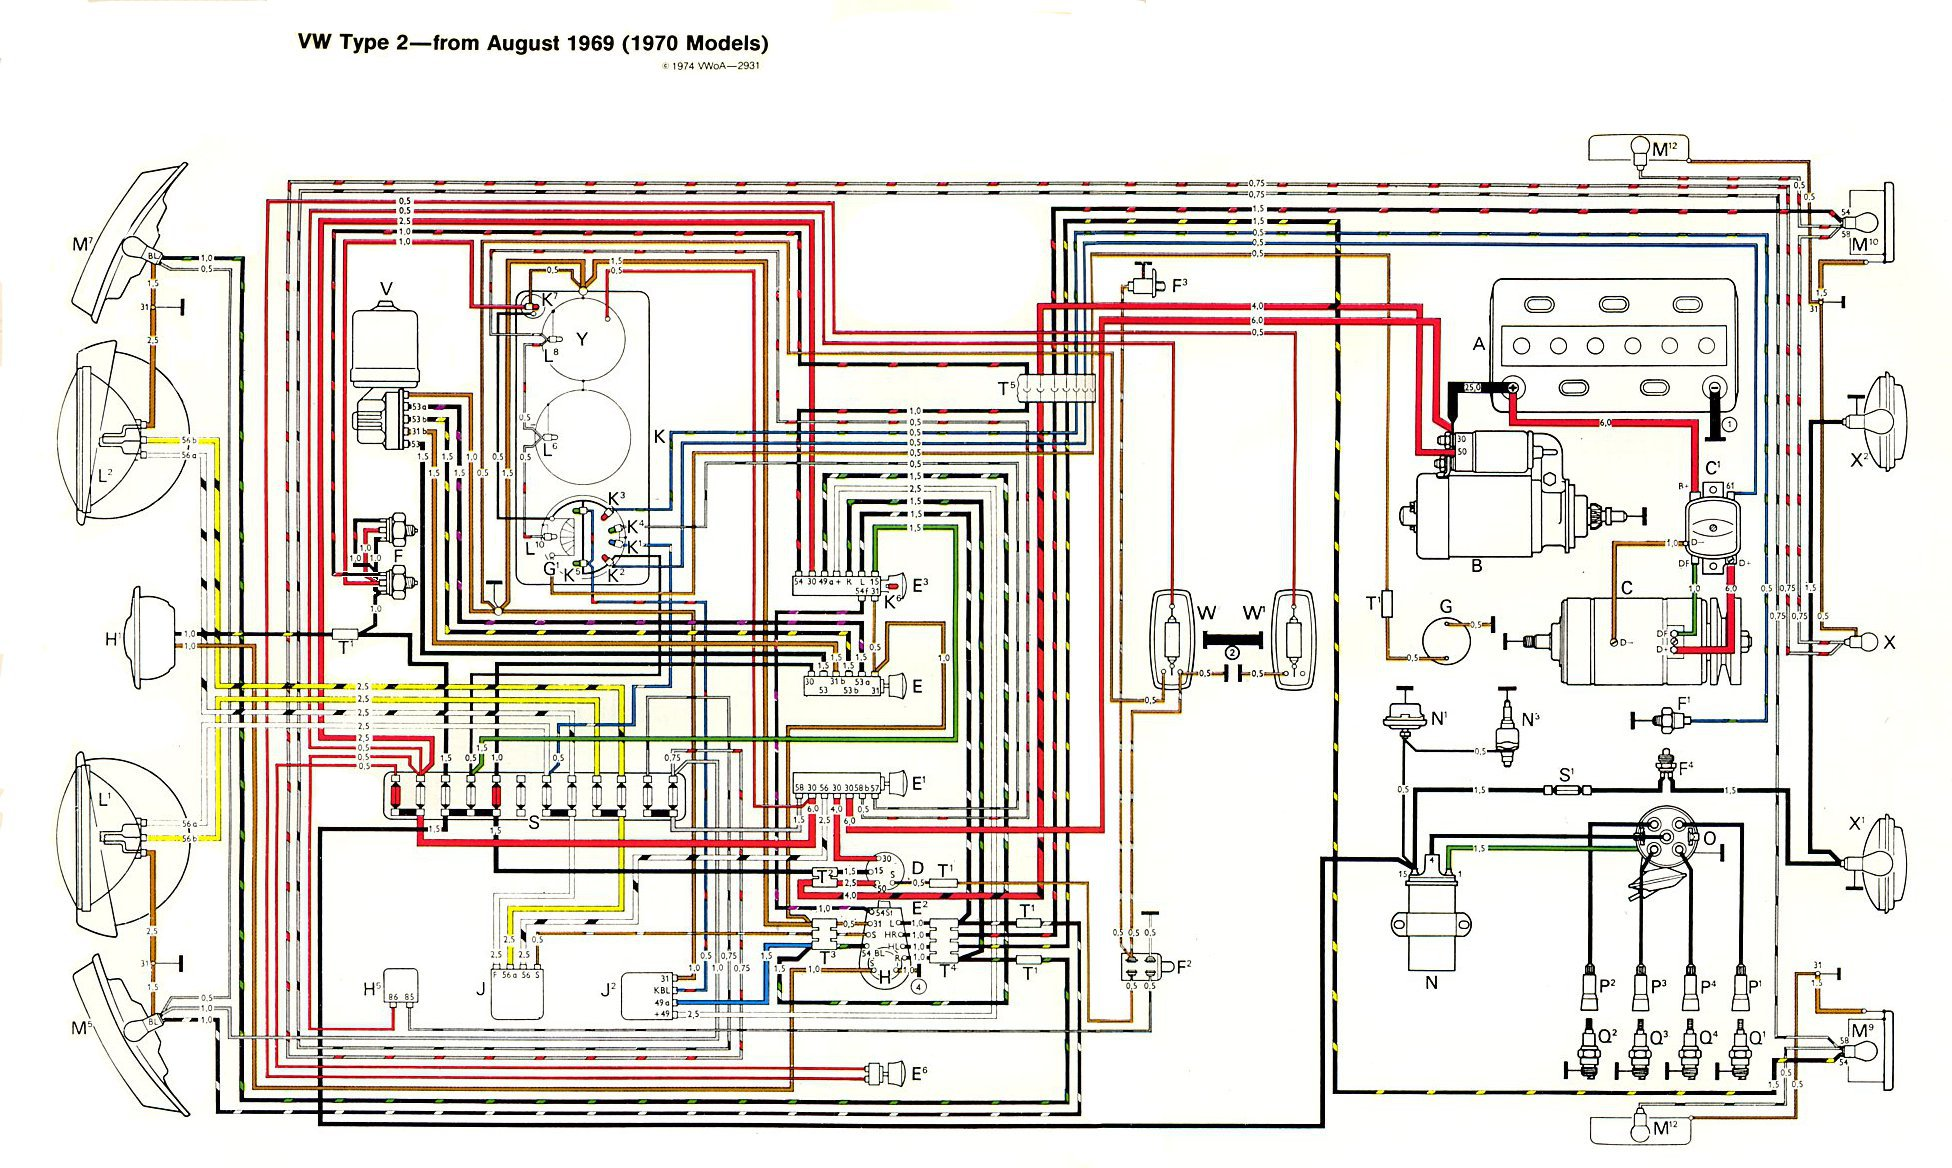 Type 2 Wiring Diagrams 69 71 Volkswagen Beetle Diagram